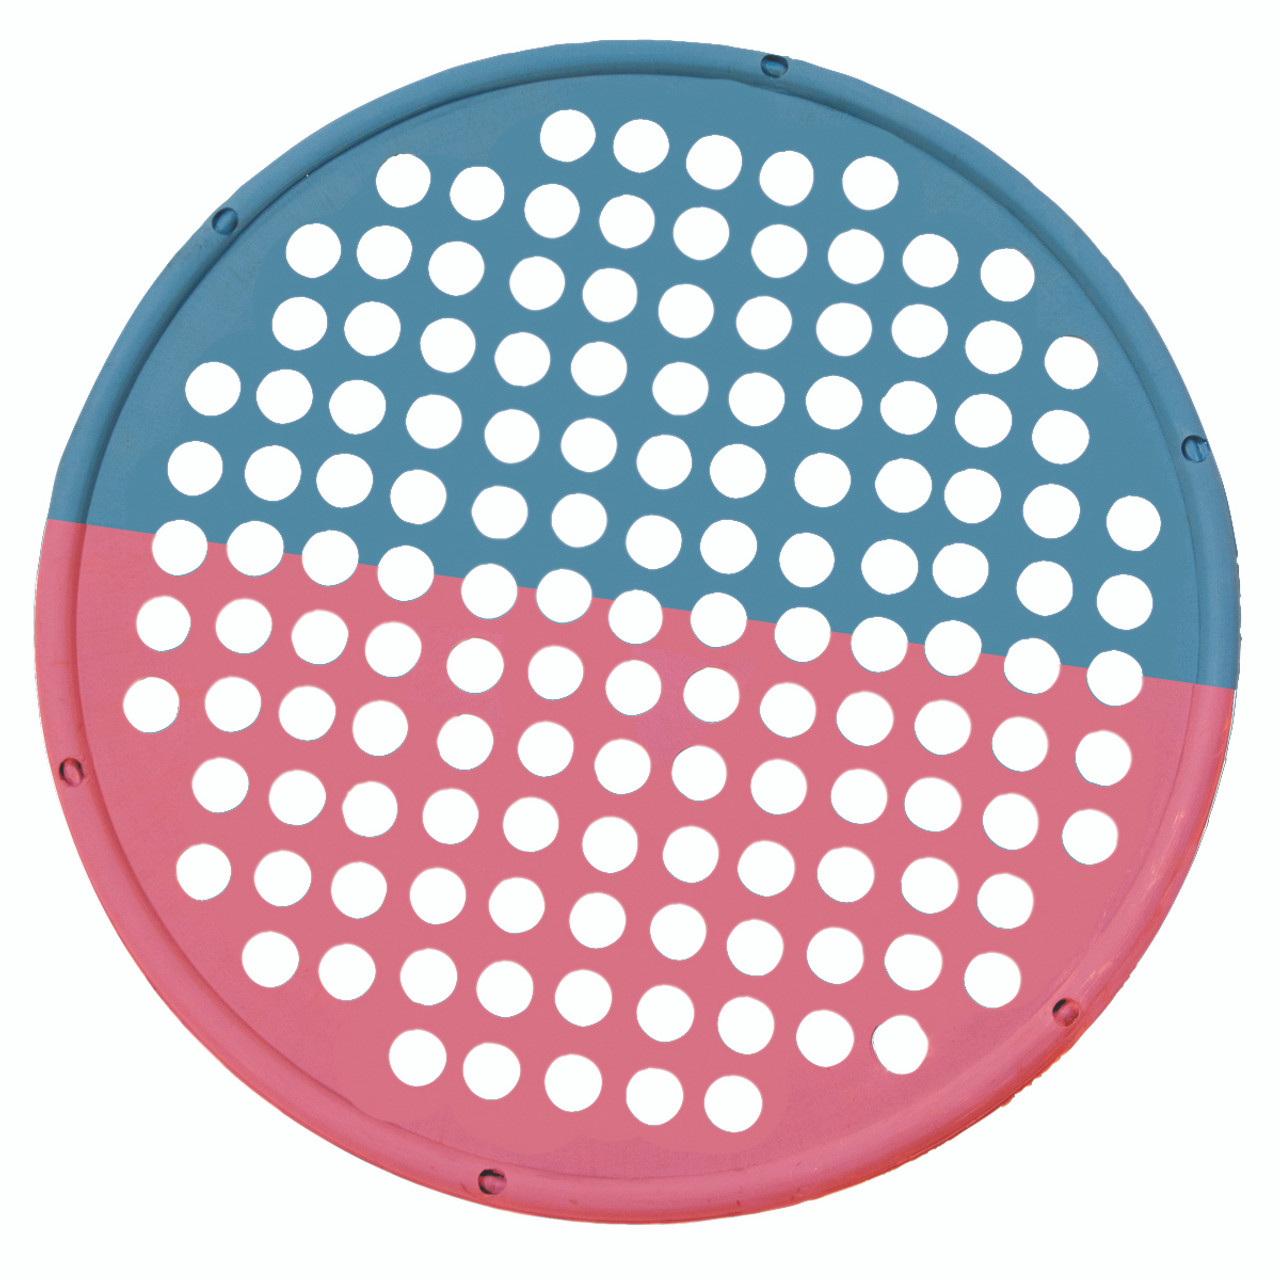 """CanDo¨ Hand Exercise Web - Low Powder - 14"""" Diameter - multi-resistance, Red/Blue"""